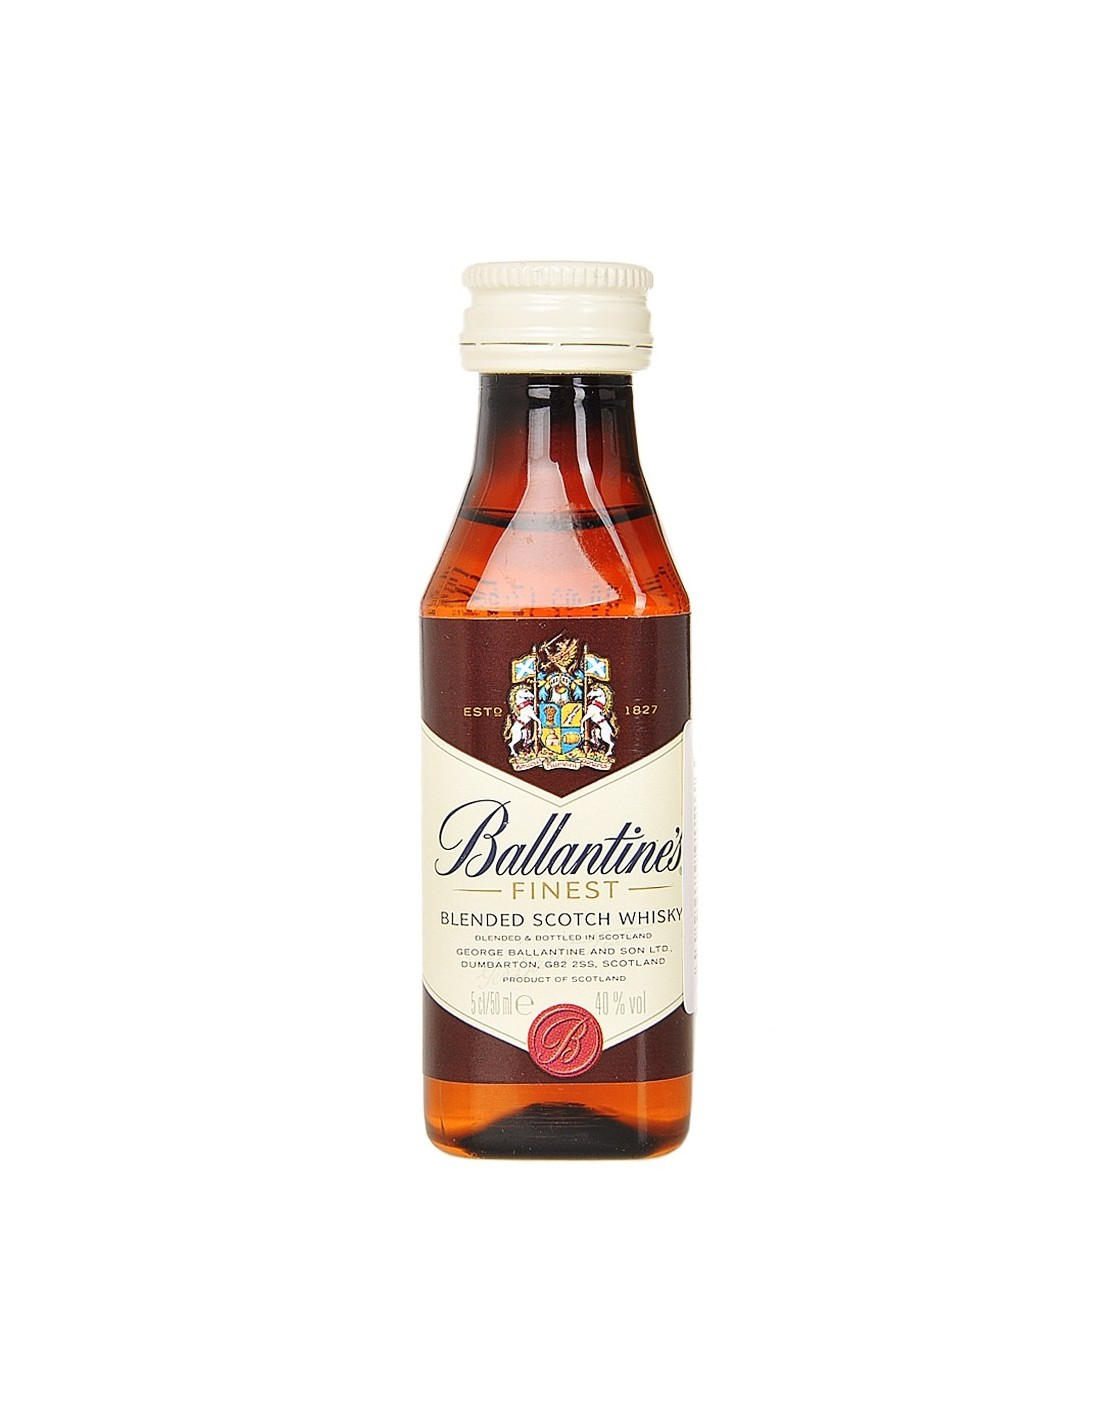 Whisky Ballantine's Finest, 40% alc., 0.05L, Scotia